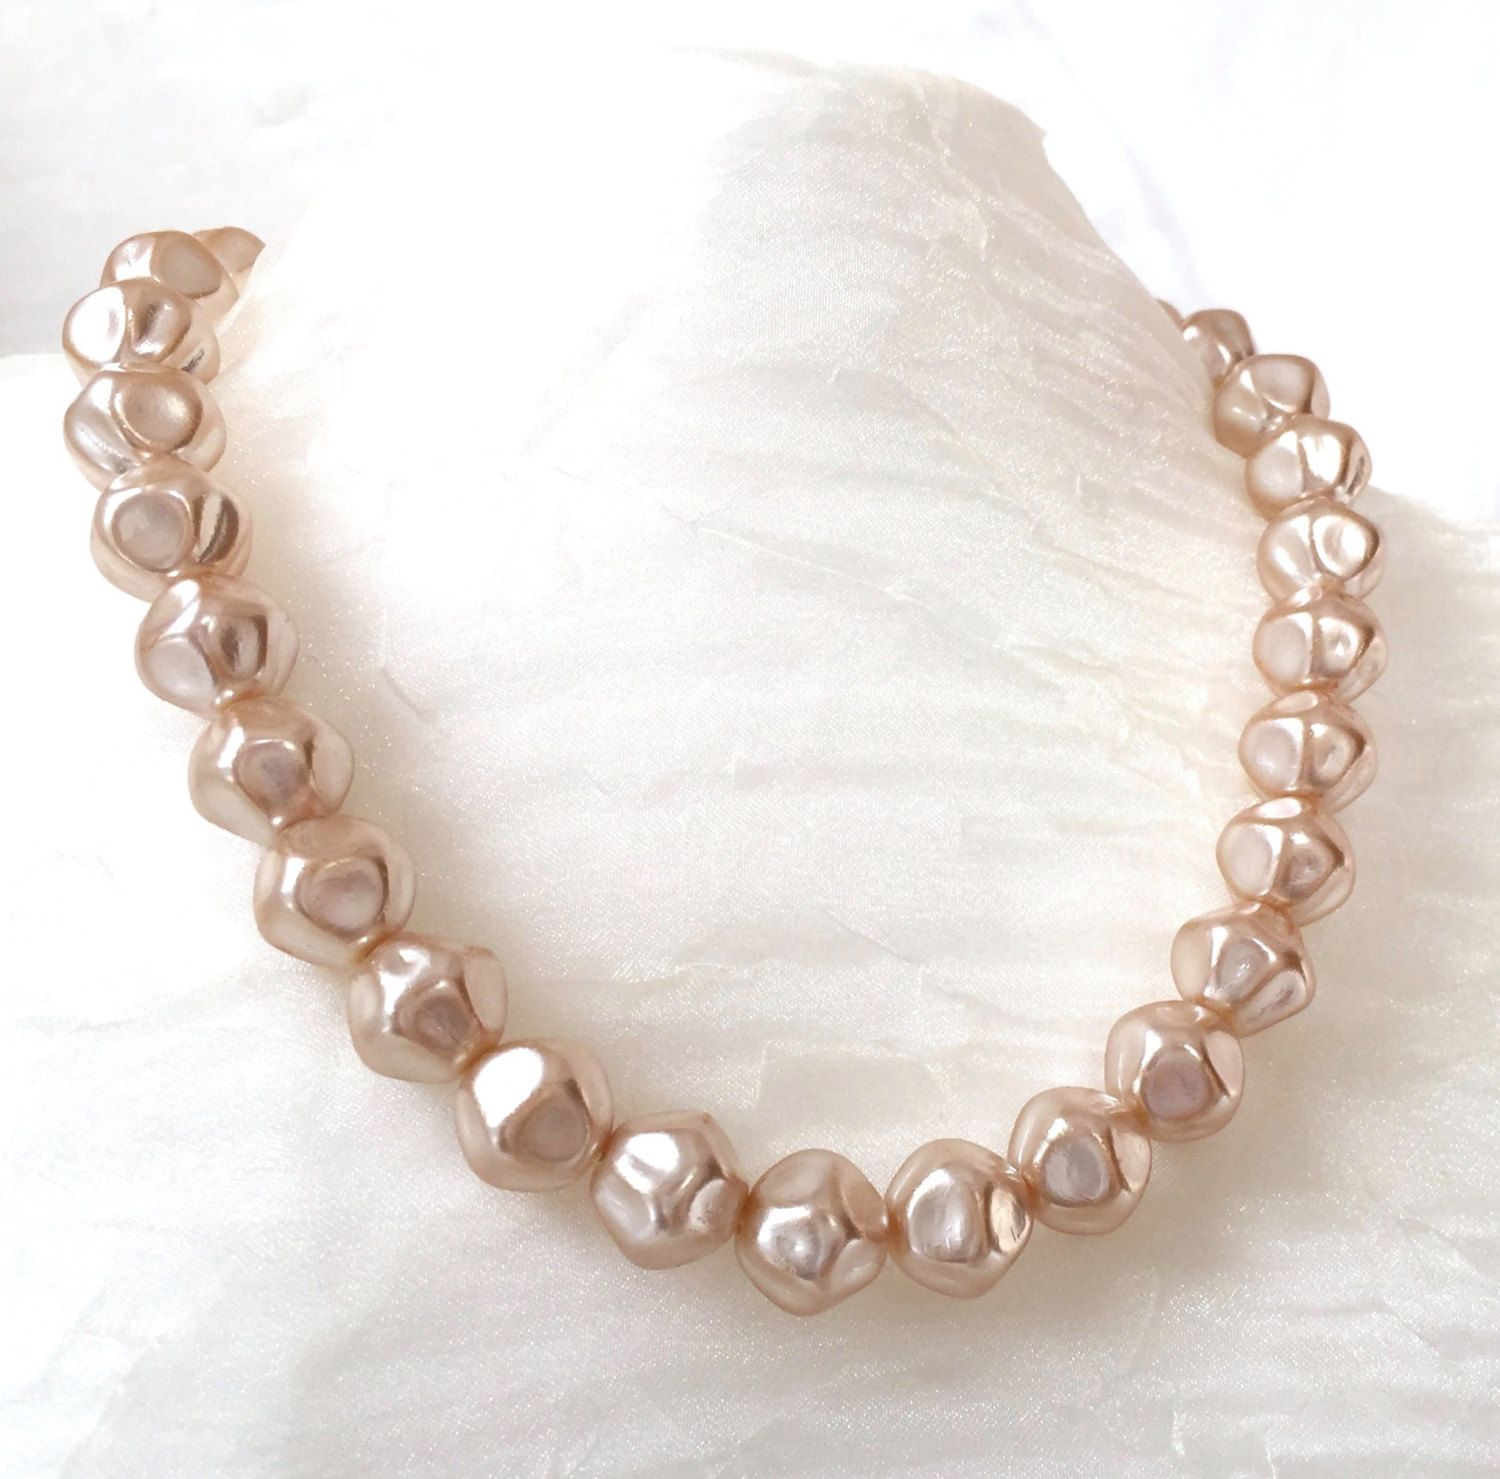 Baroque Pearl Choker Miriam Haskell Pearl Ivory Vintage Etsy Large Pearl Necklace Pearl Choker Baroque Pearls